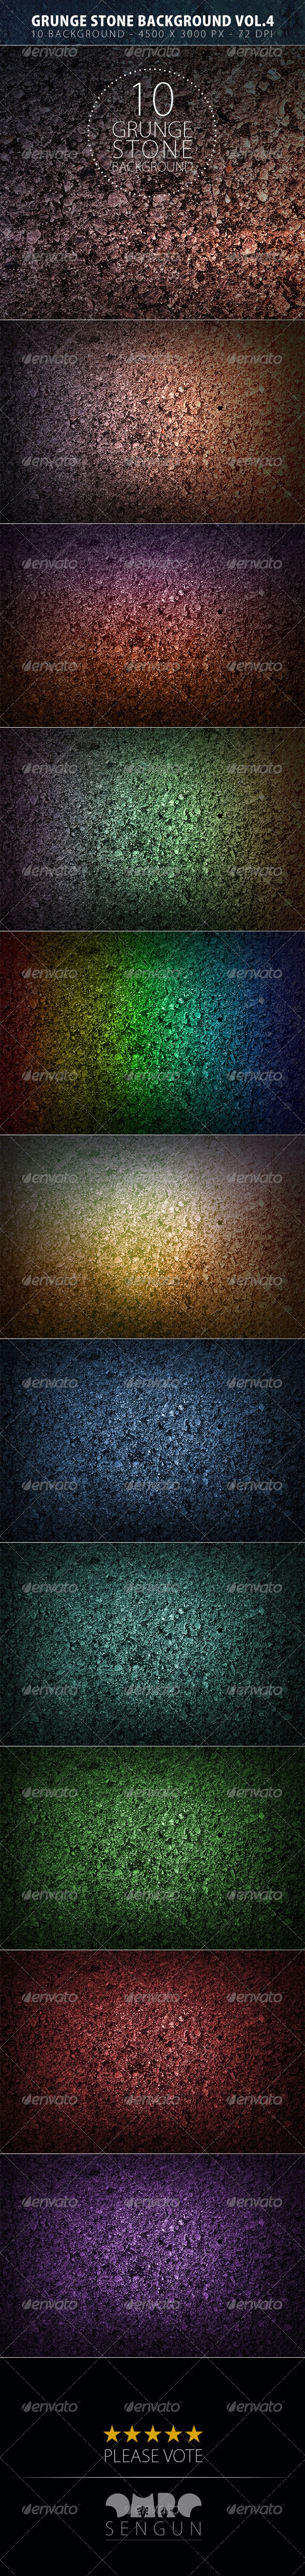 GraphicRiver Grunge Stone Backgrounds Vol.4 8143066